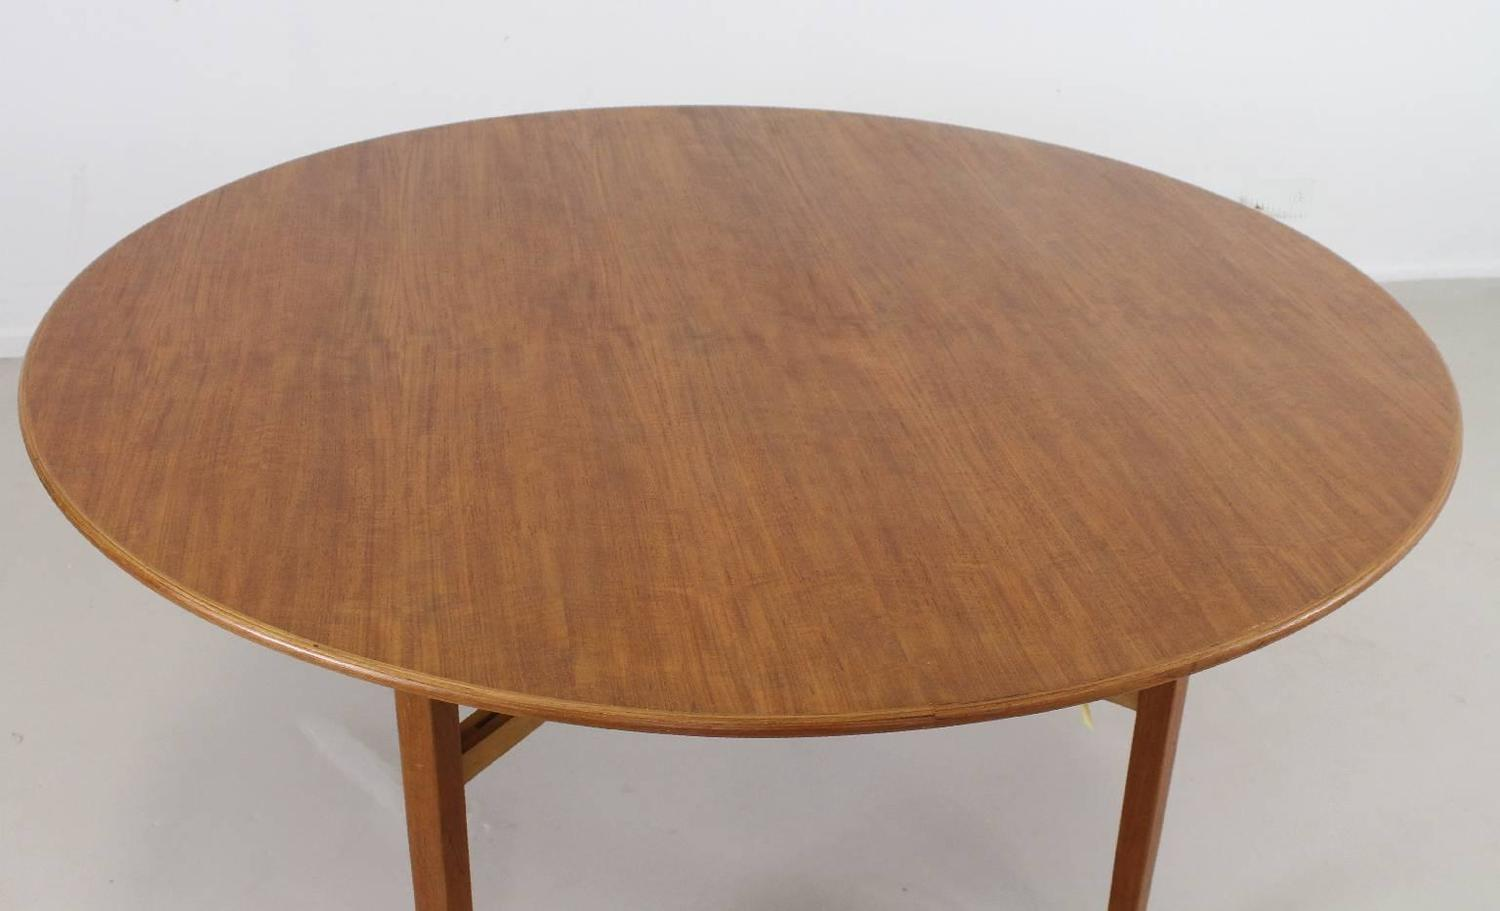 round card table and chairs office chair at work review large designed by lewis butler for knoll